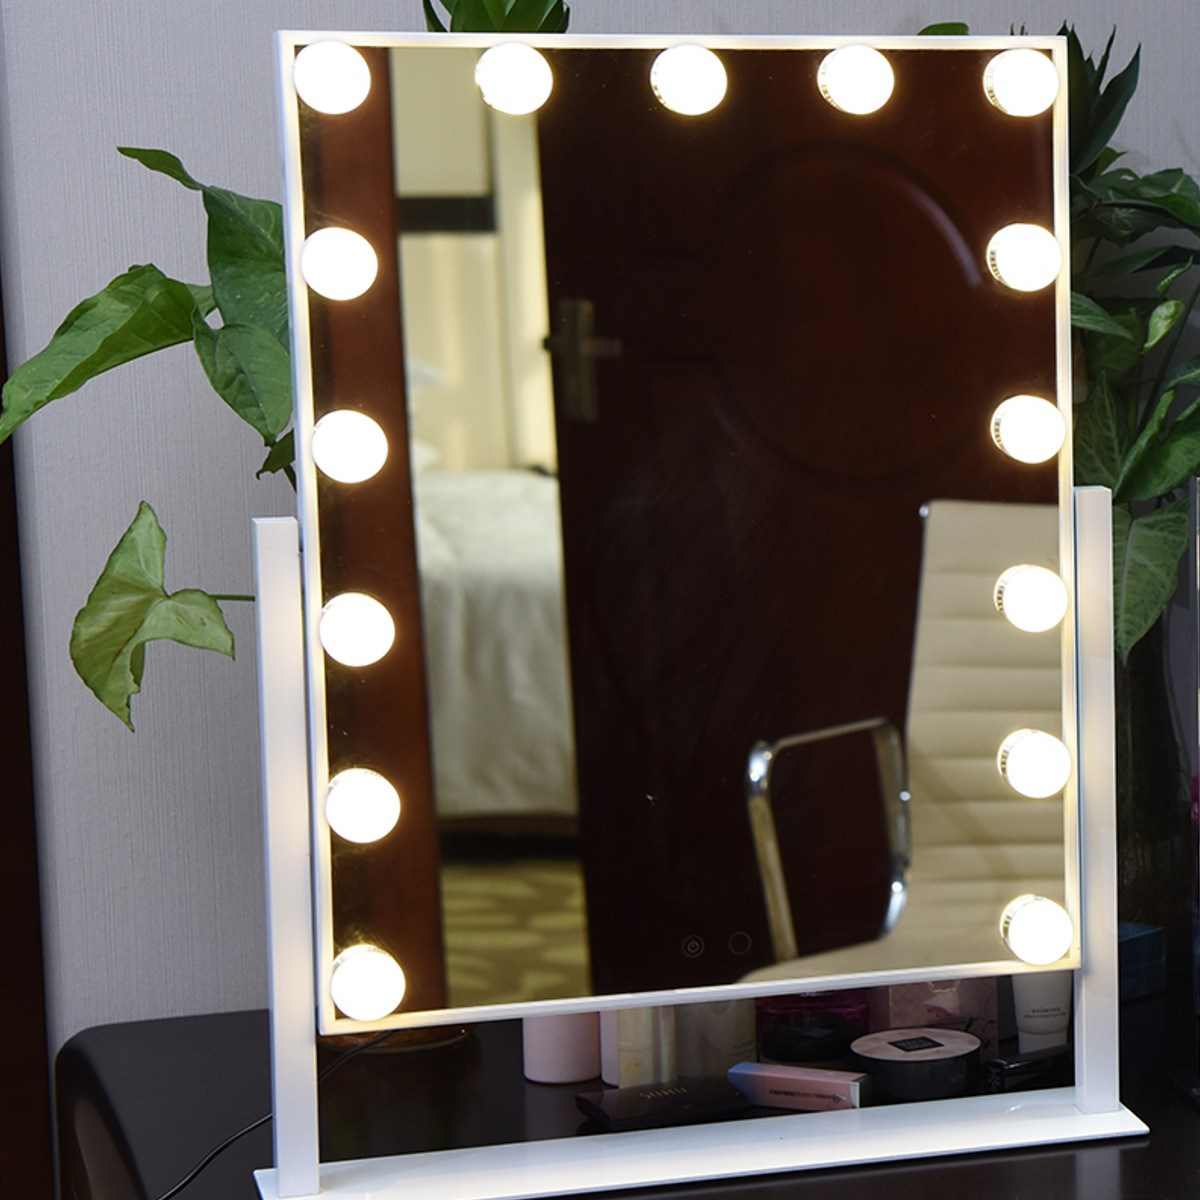 Large LED Makeup Mirror Roration Tabletop White Yellow Lighted Touch Screen Vanity Mirror With 15PCS Bulbs For Dressing Room dimmable hollywood makeup vanity mirror with light large lighted tabletop cosmetic mirror with 9pcs touch control led bulbs